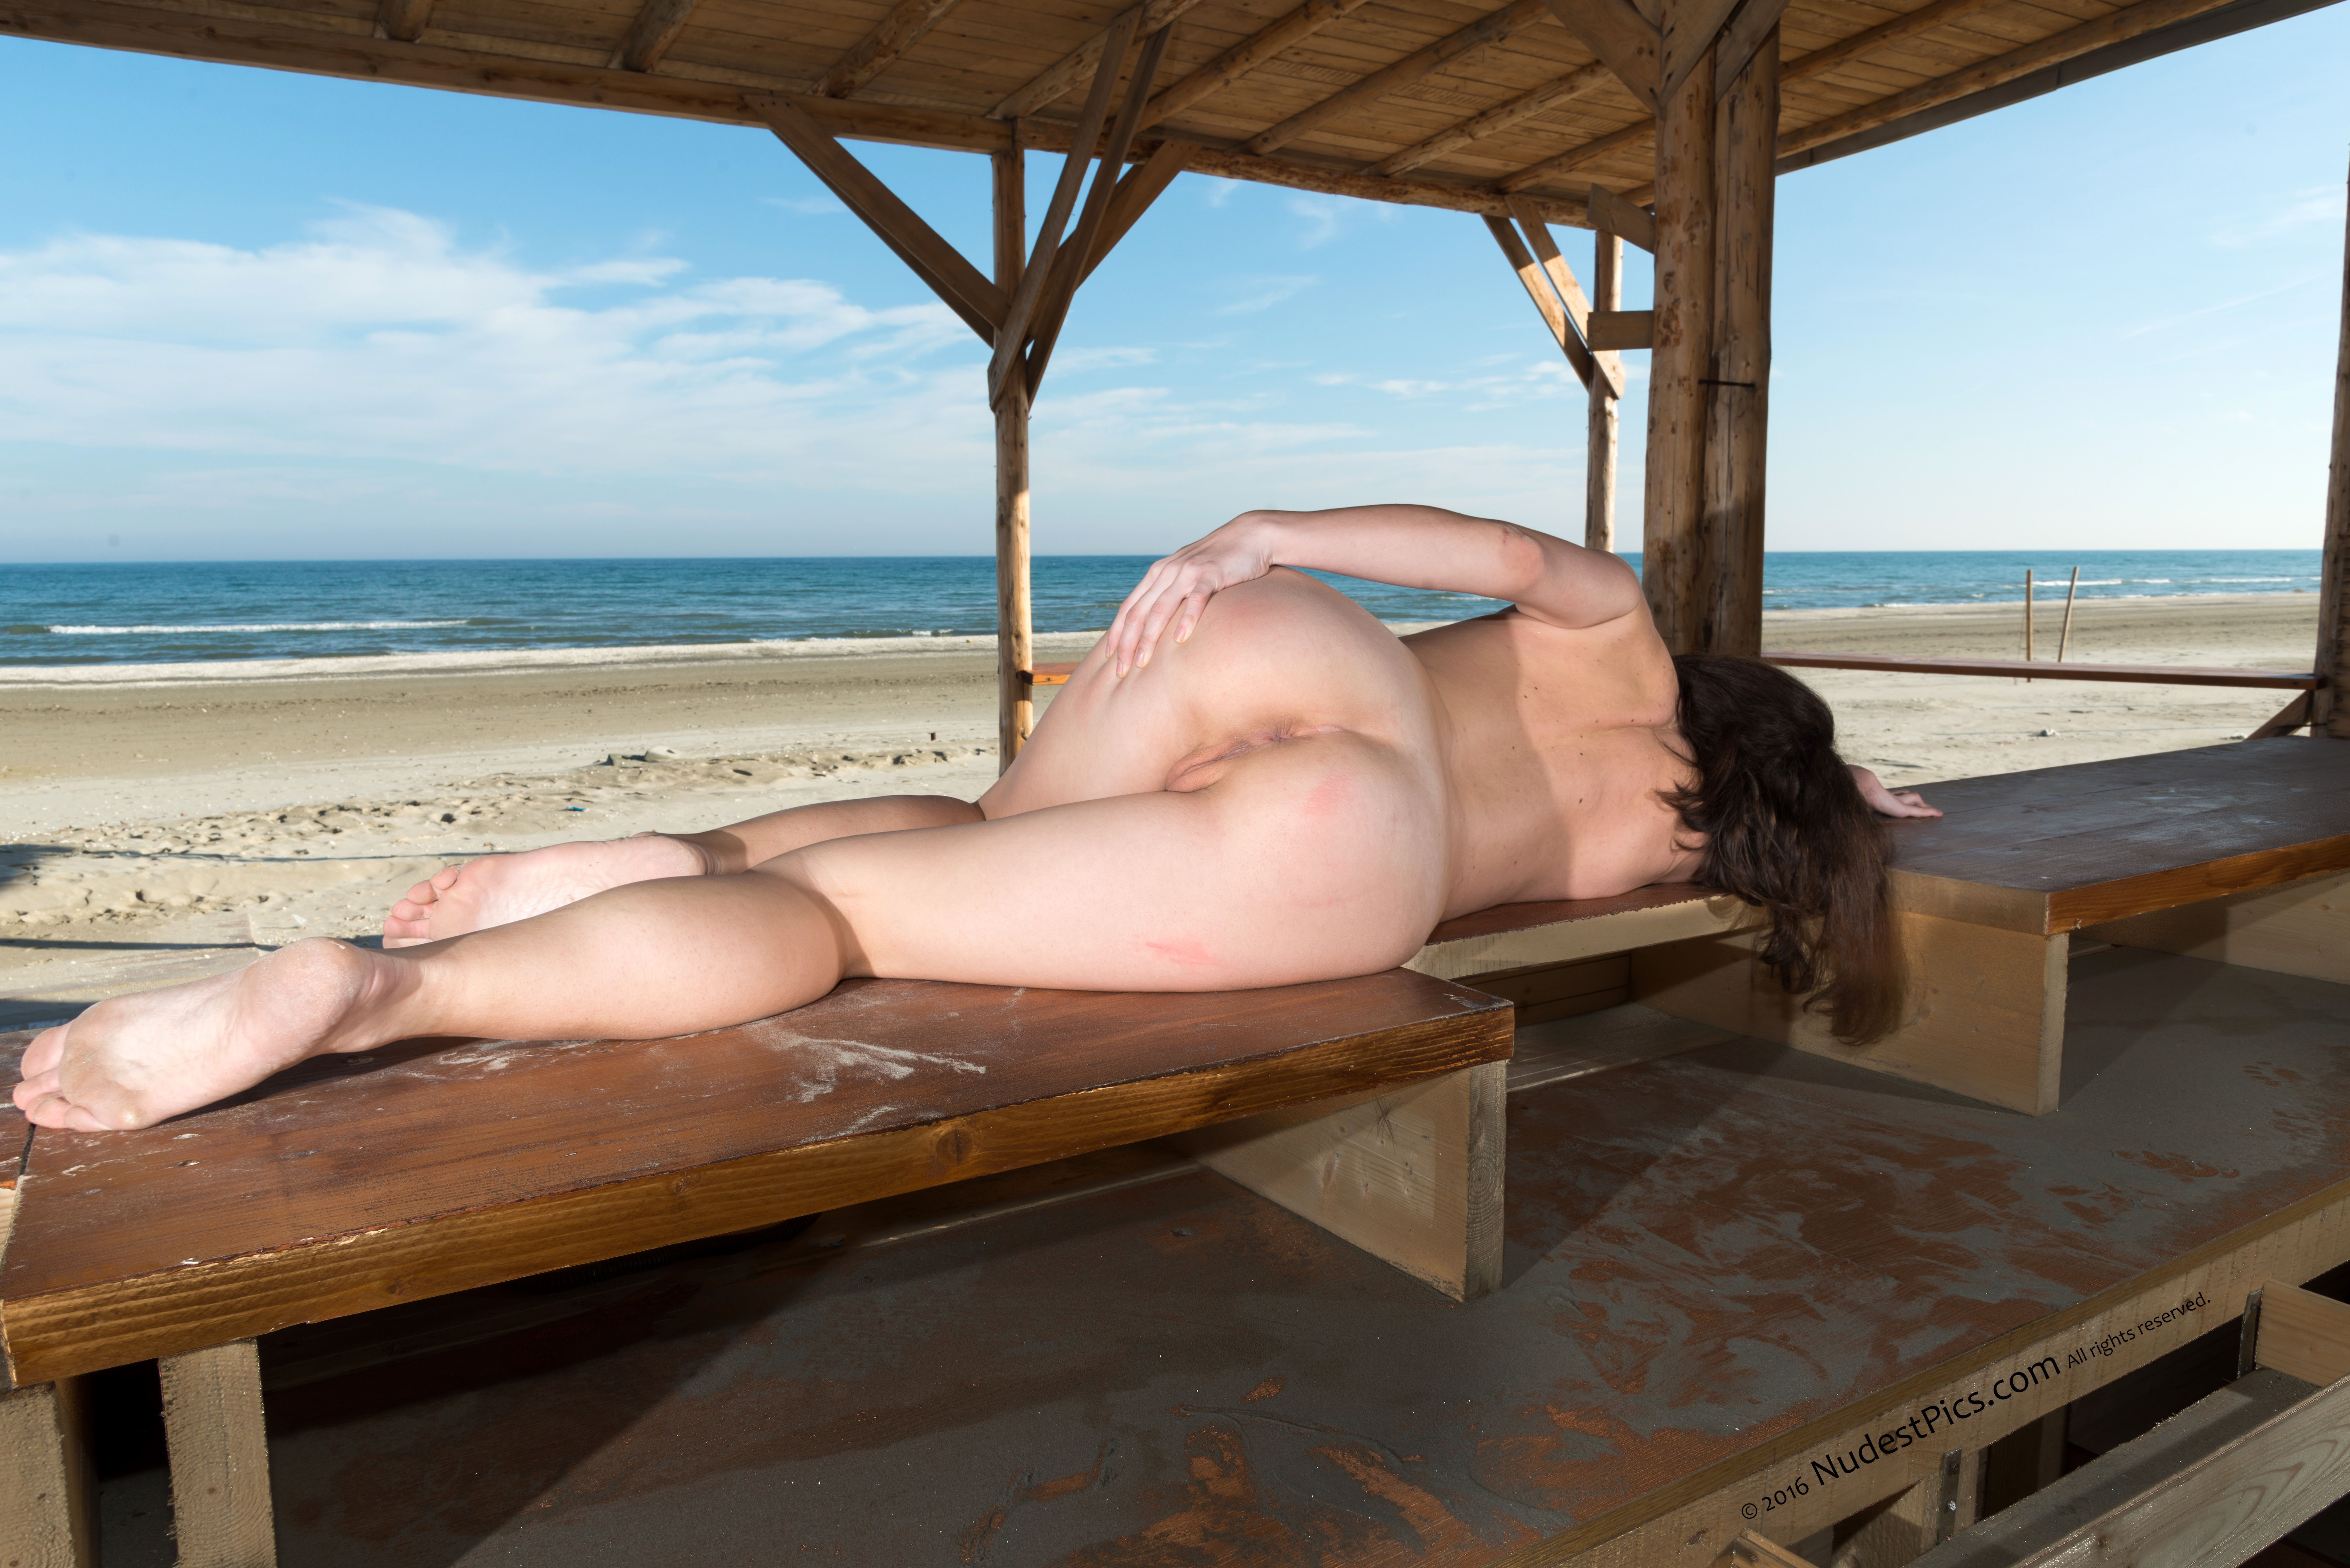 Nude Girl Laying from Behind on Dusty Beach Bar